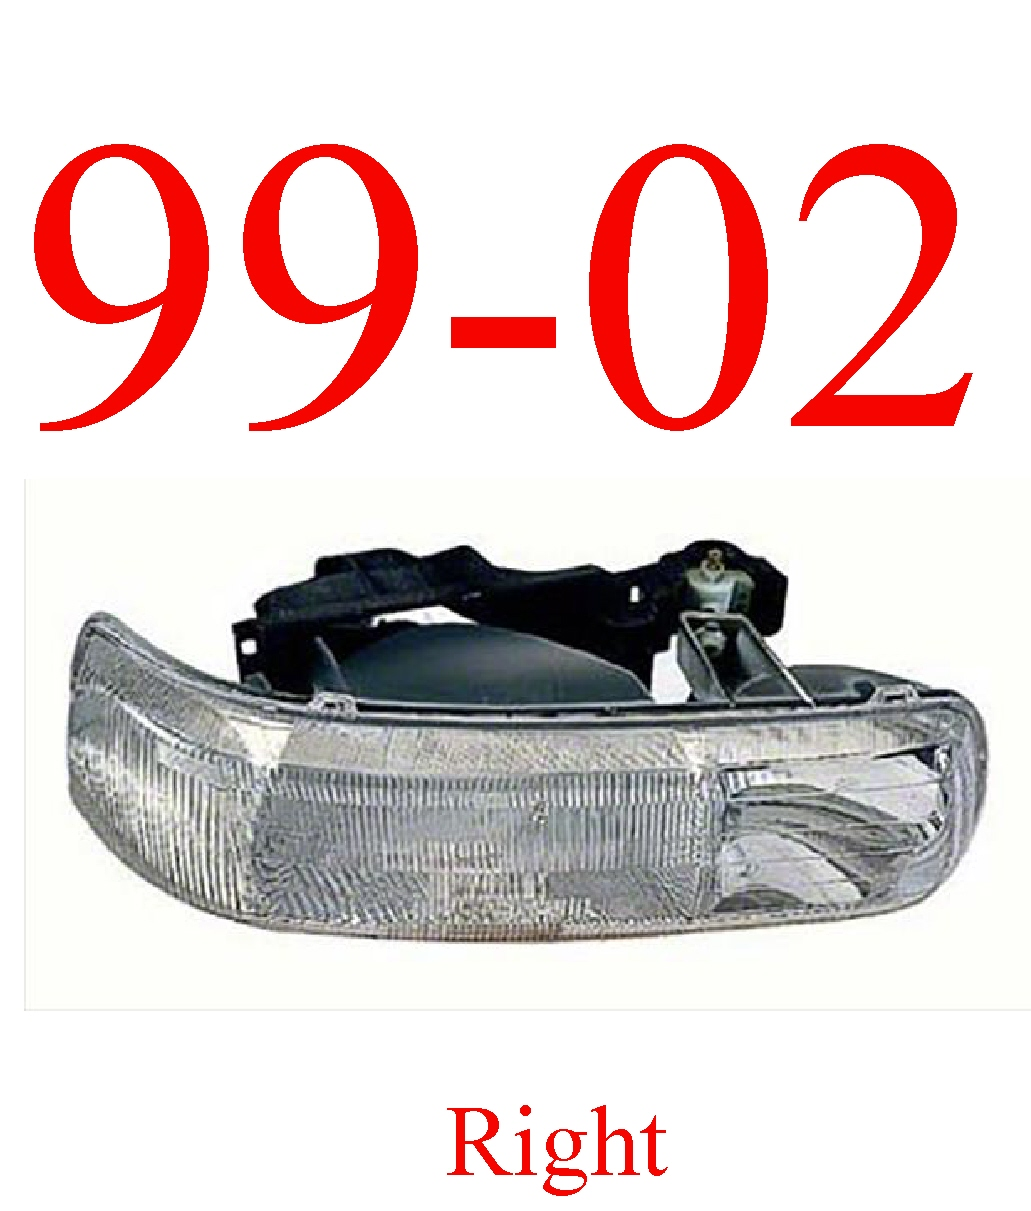 99-02 Chevy Right Head Light Assembly